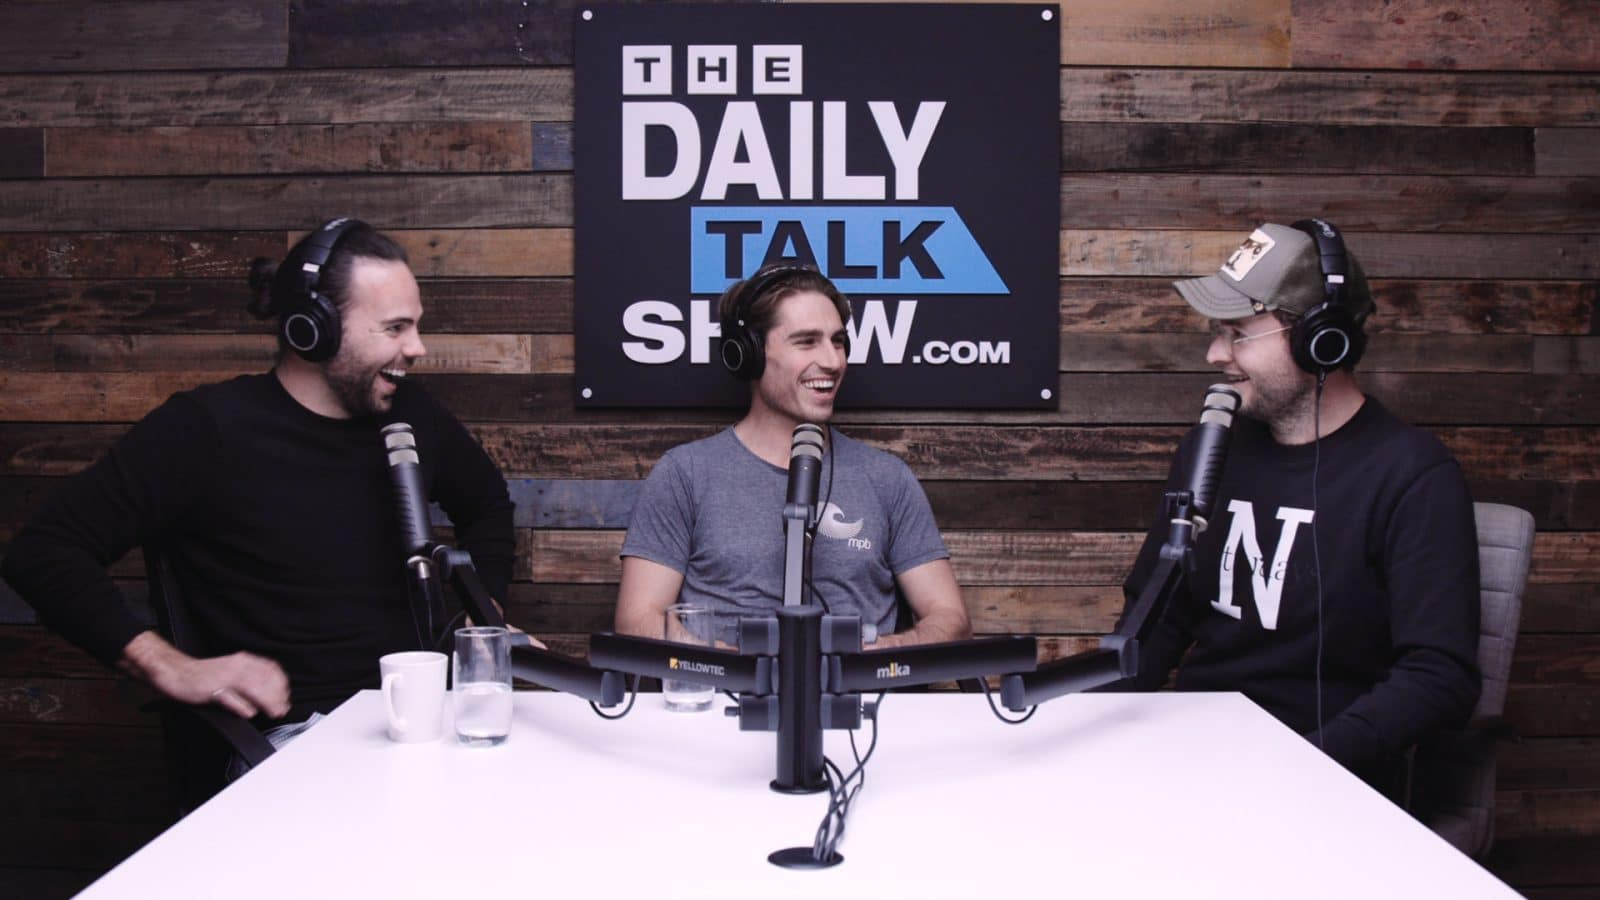 The-Daily-Talk-Show-397